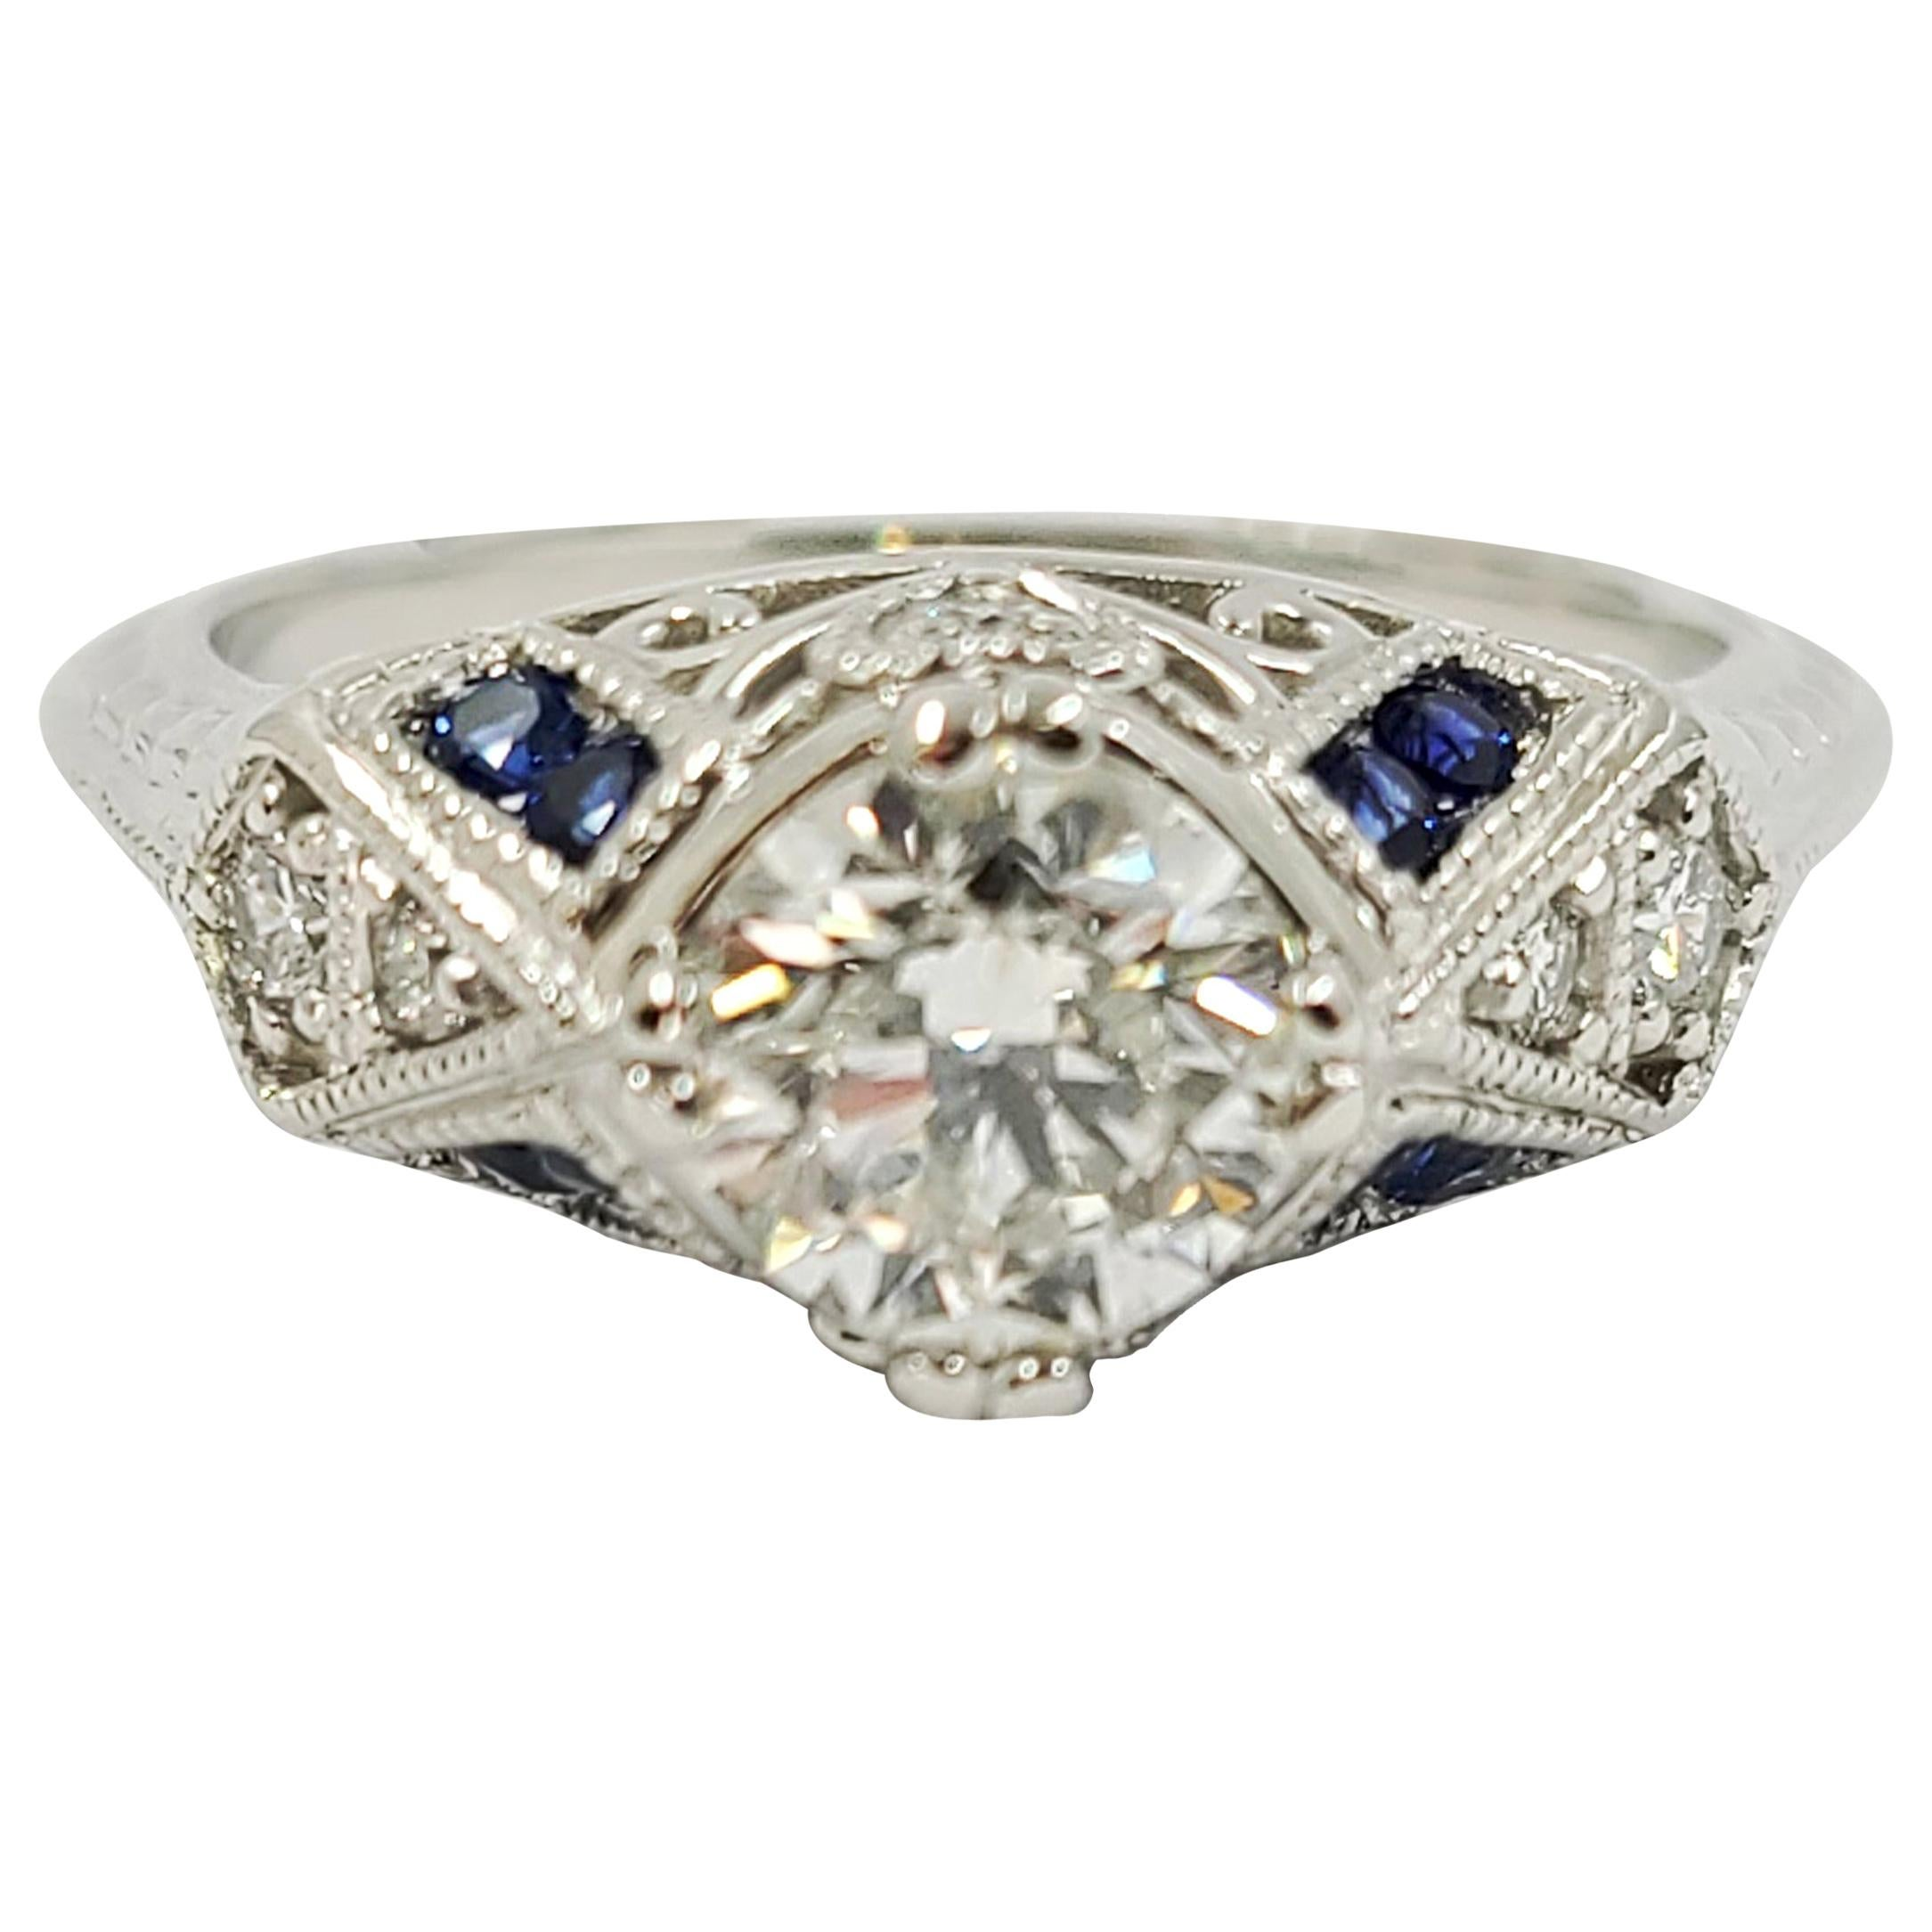 Vintage Platinum Diamond Engagement Ring with Sapphire Accents